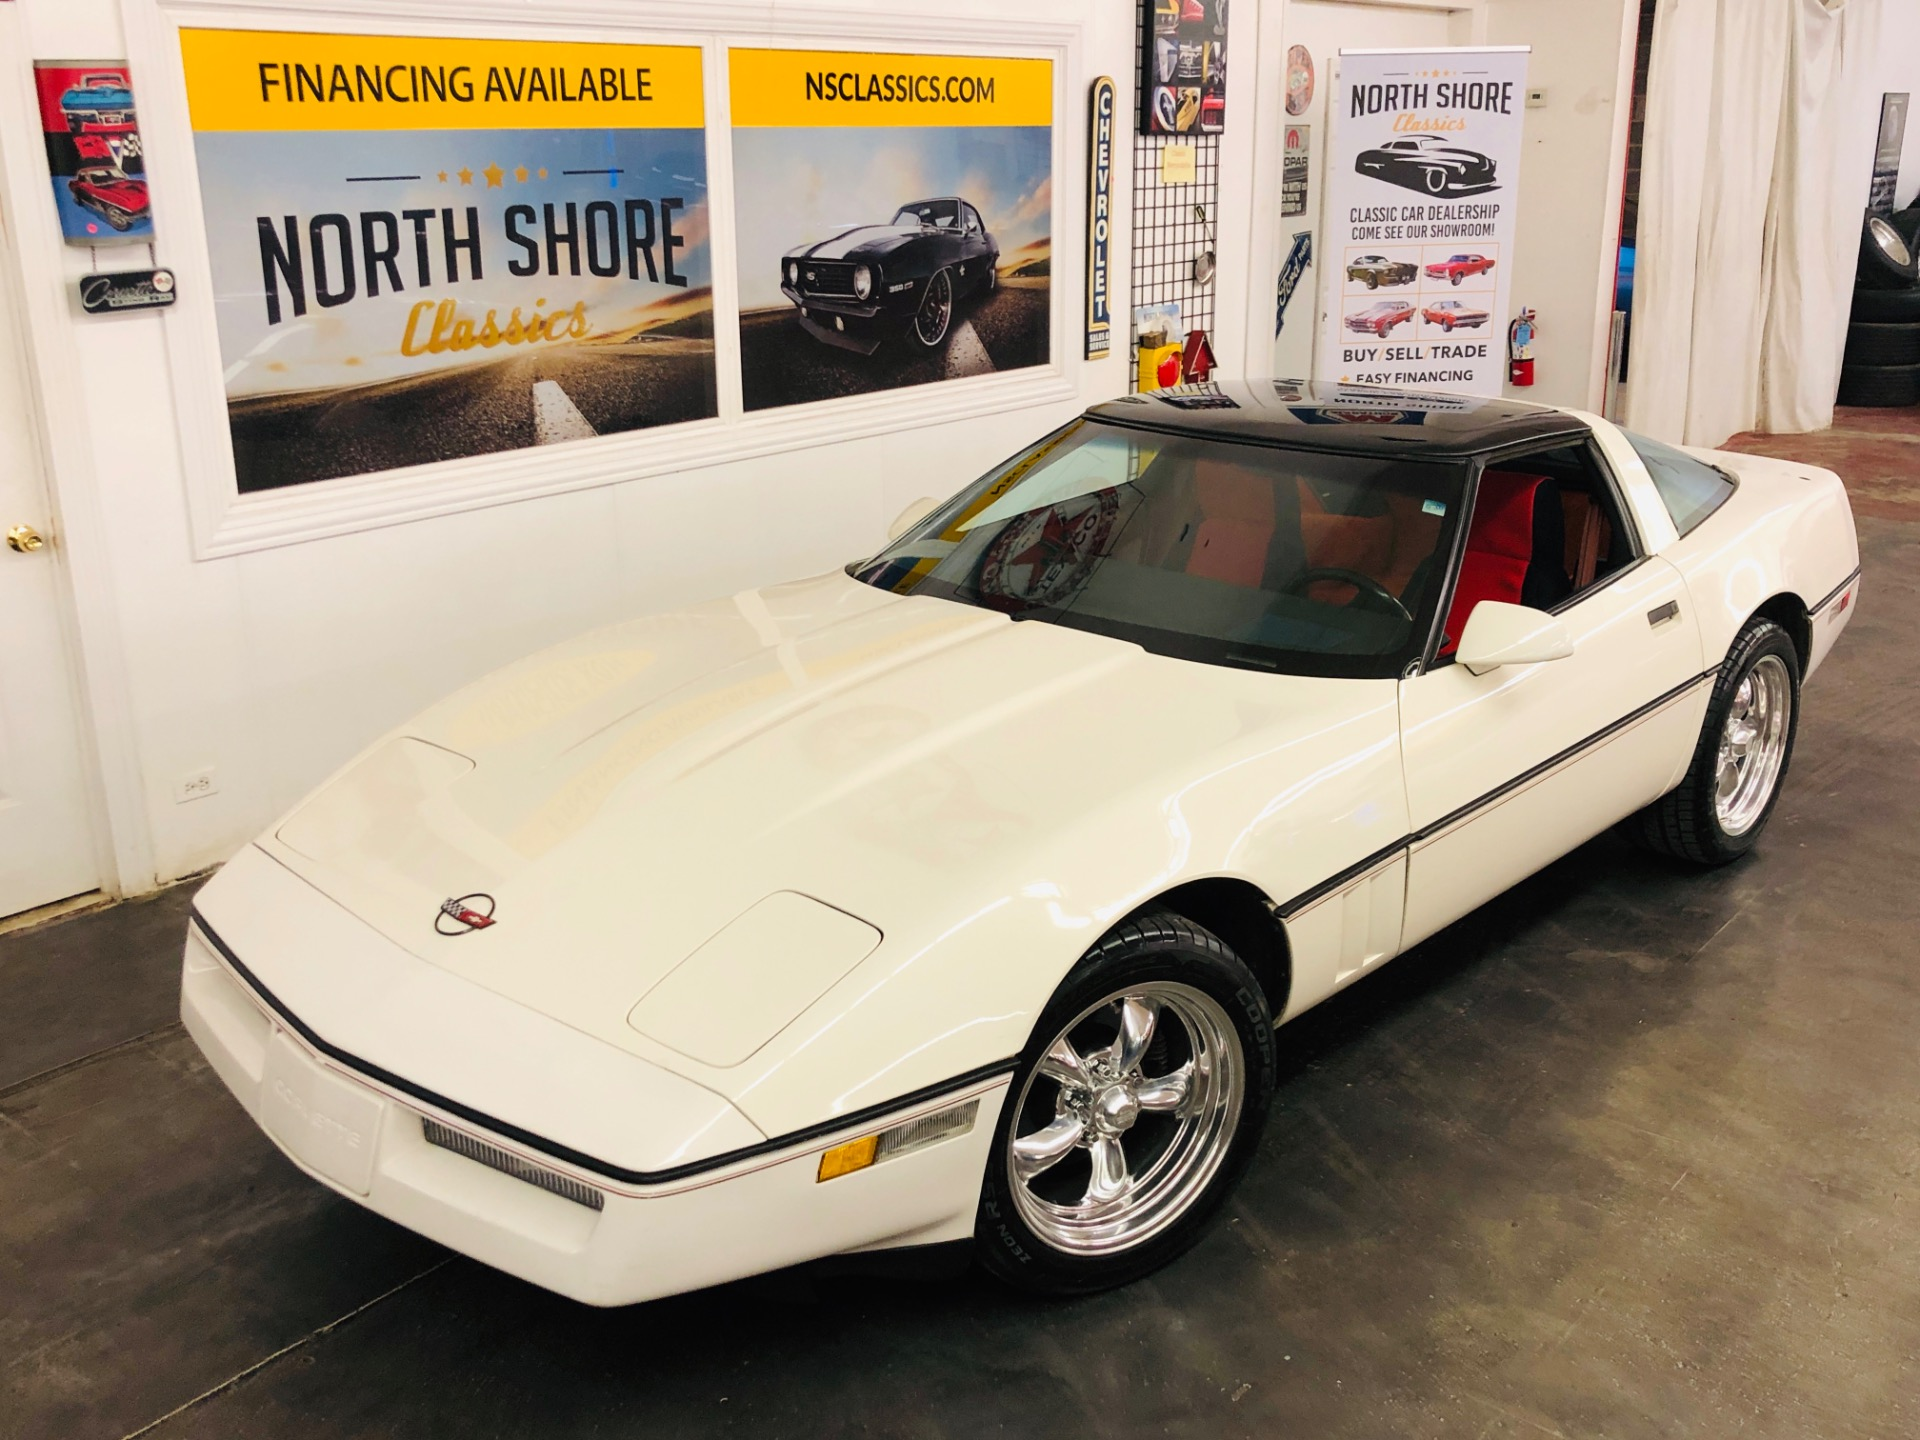 Used 1985 Chevrolet Corvette - PRICE DROP - 53K MILES - VERY CLEAN VETTE - SEE VIDEO | Mundelein, IL